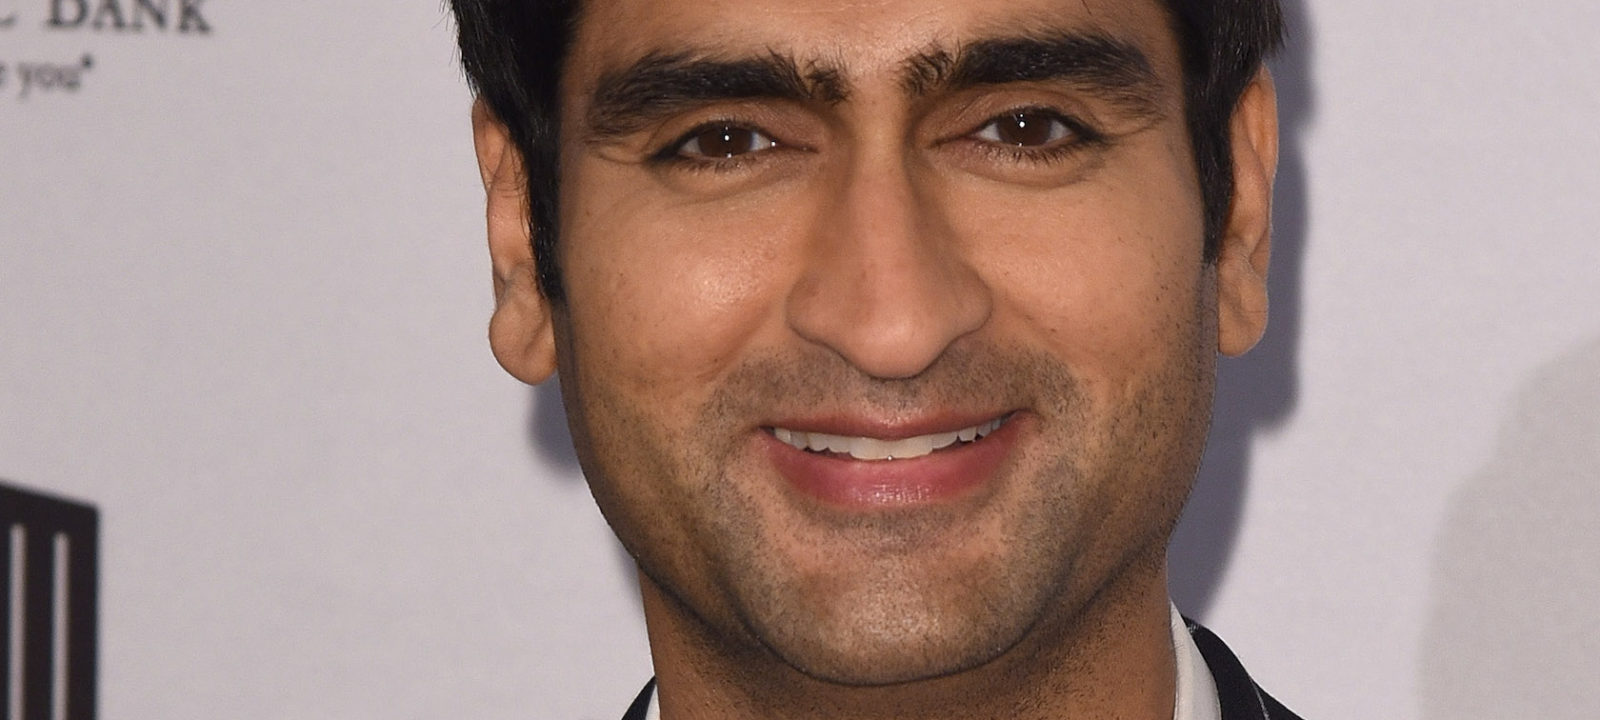 Kumail Nanjiani attends SFFILM's 60th Anniversary Awards Night at Palace of Fine Arts Theatre on December 5, 2017 in San Francisco, California.